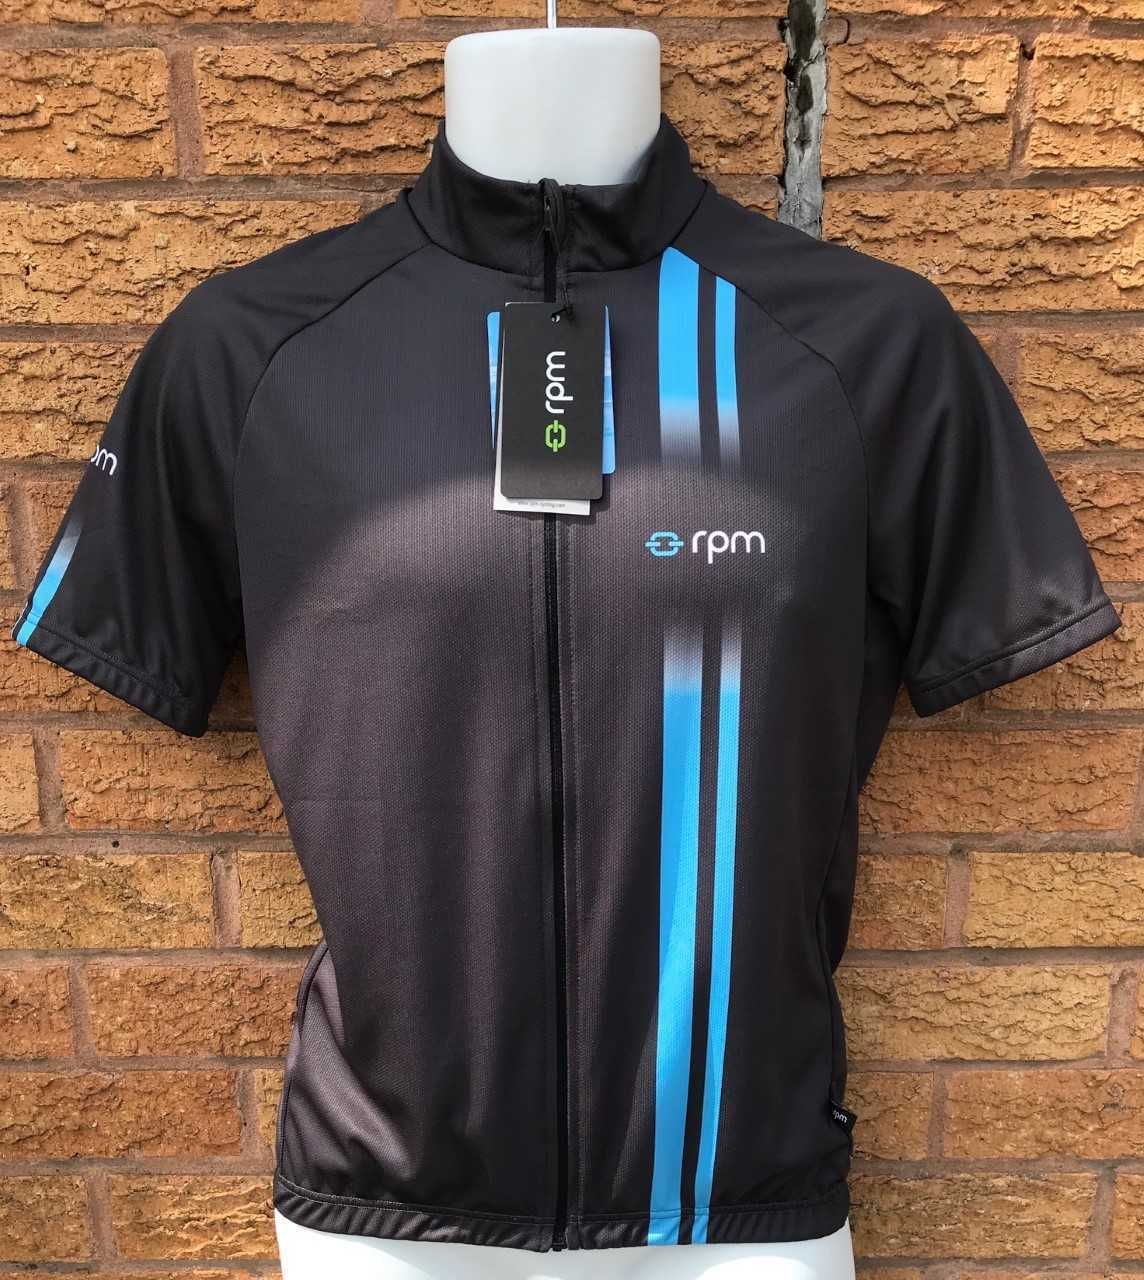 RPM SSJ60 Sportive Fit  Men's Cycling Short Sleeve Jersey Made in  Grey bluee  a lot of concessions